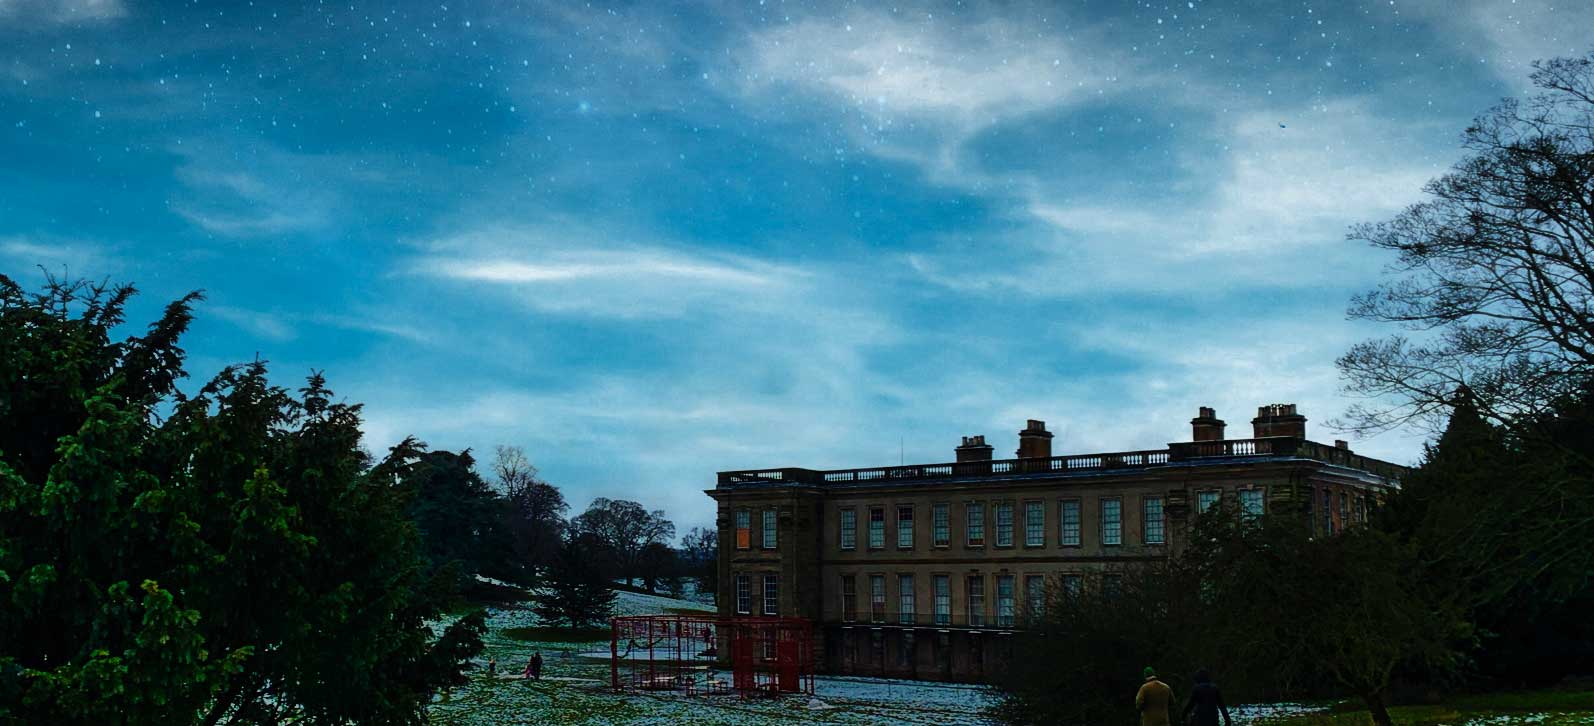 Calke Abbey with snow and starry sky